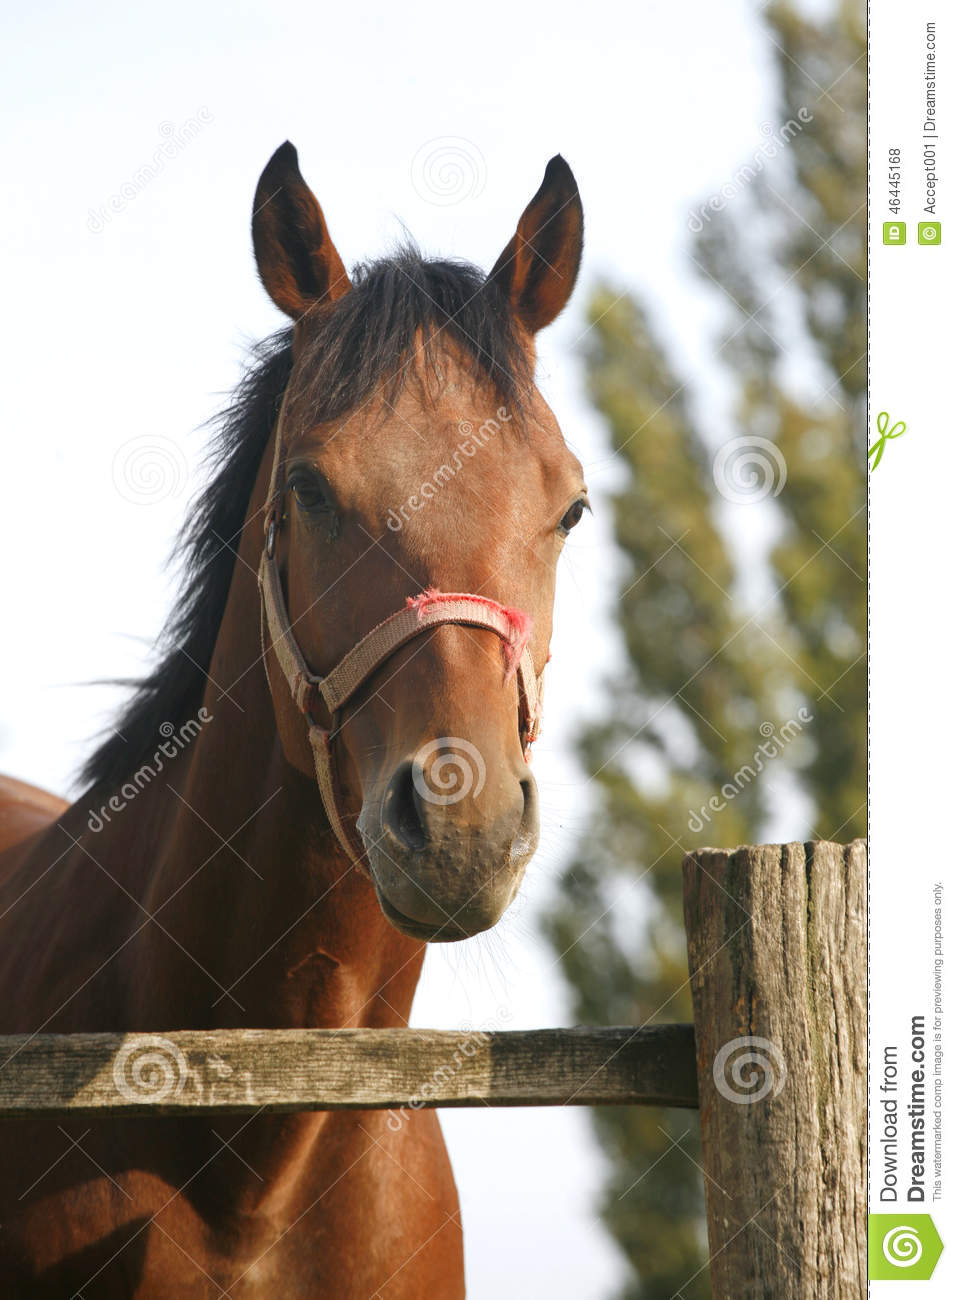 Bay Horse In The Farm Behind The Fence Stock Photo.